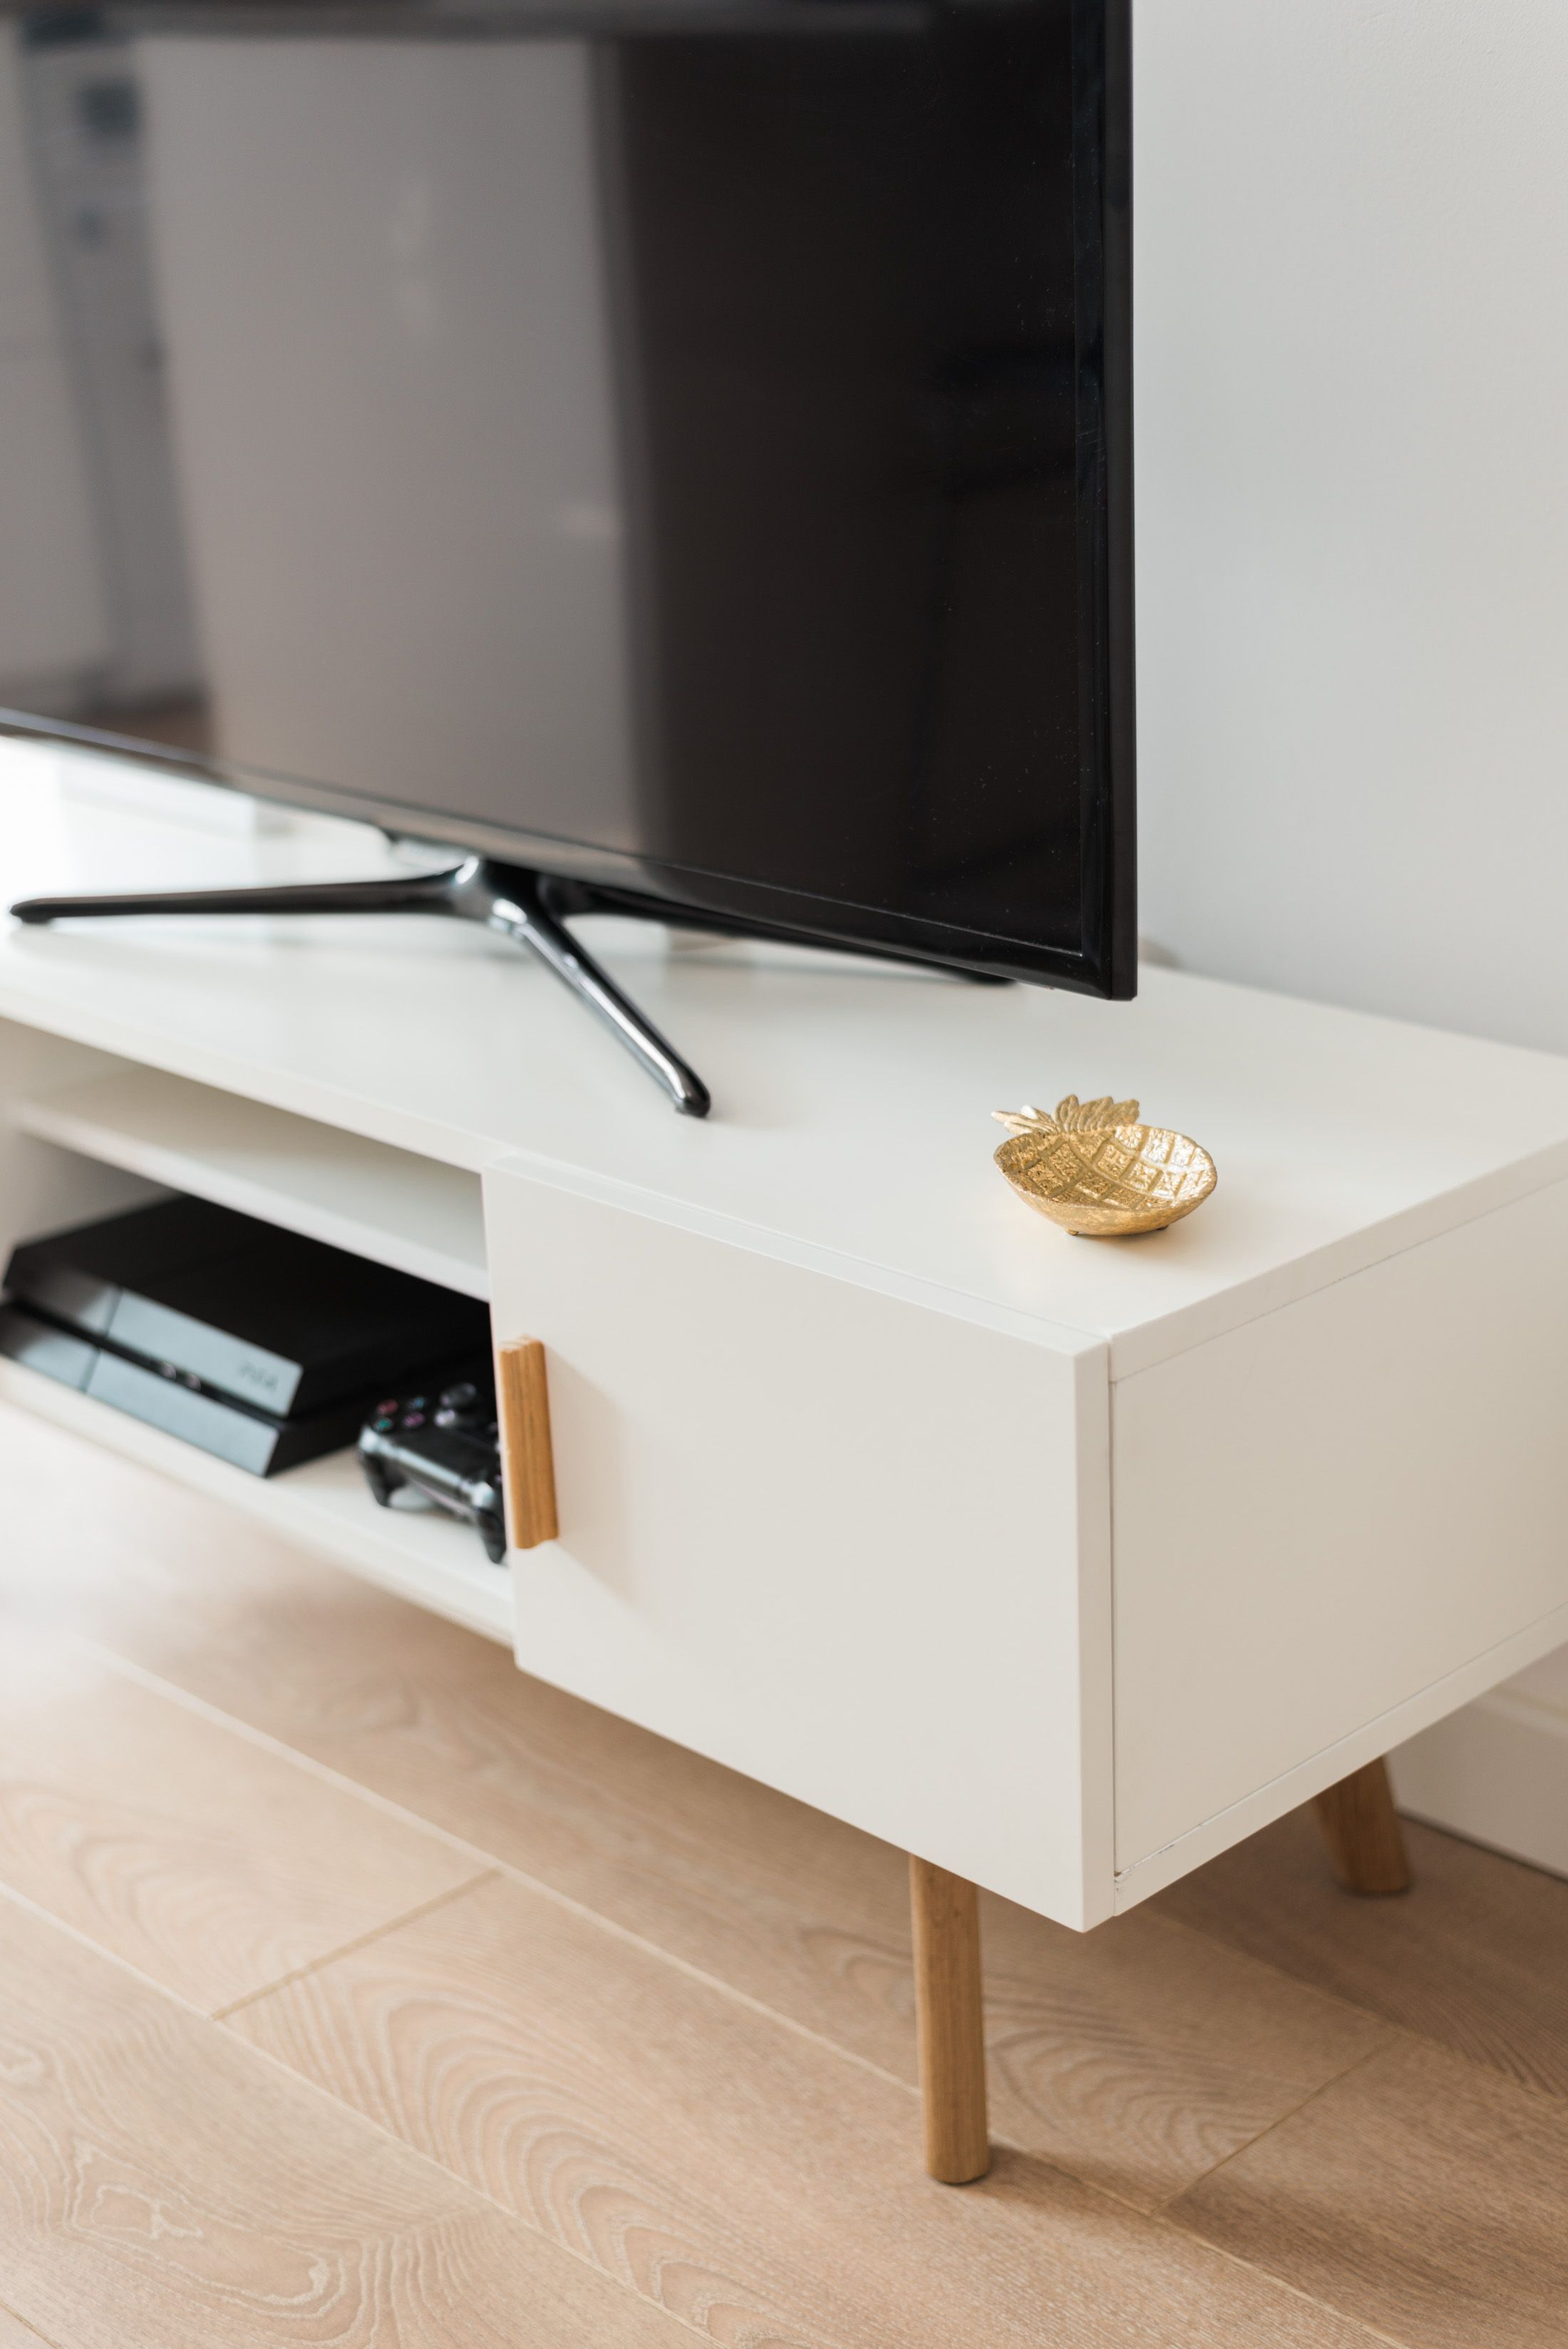 Living Room Furniture Tv Units modern tv unit design for living room - google search | modern tv